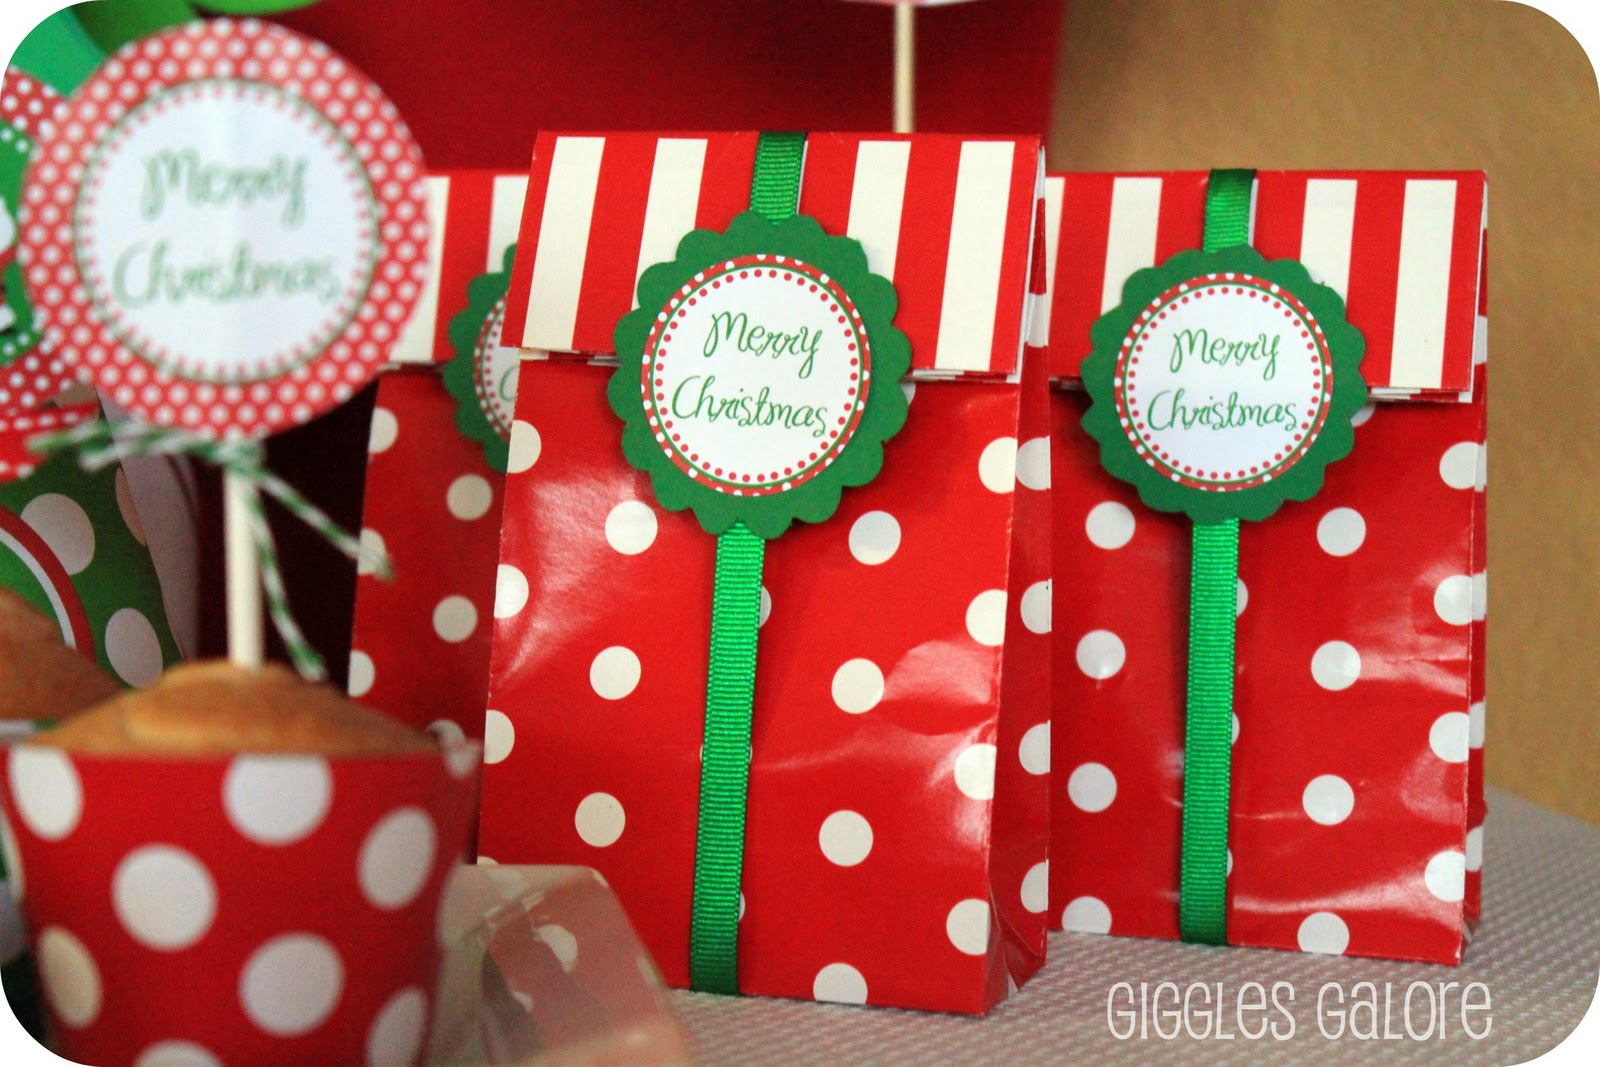 north pole breakfast 2011 giggles galore - Christmas Candy Bags